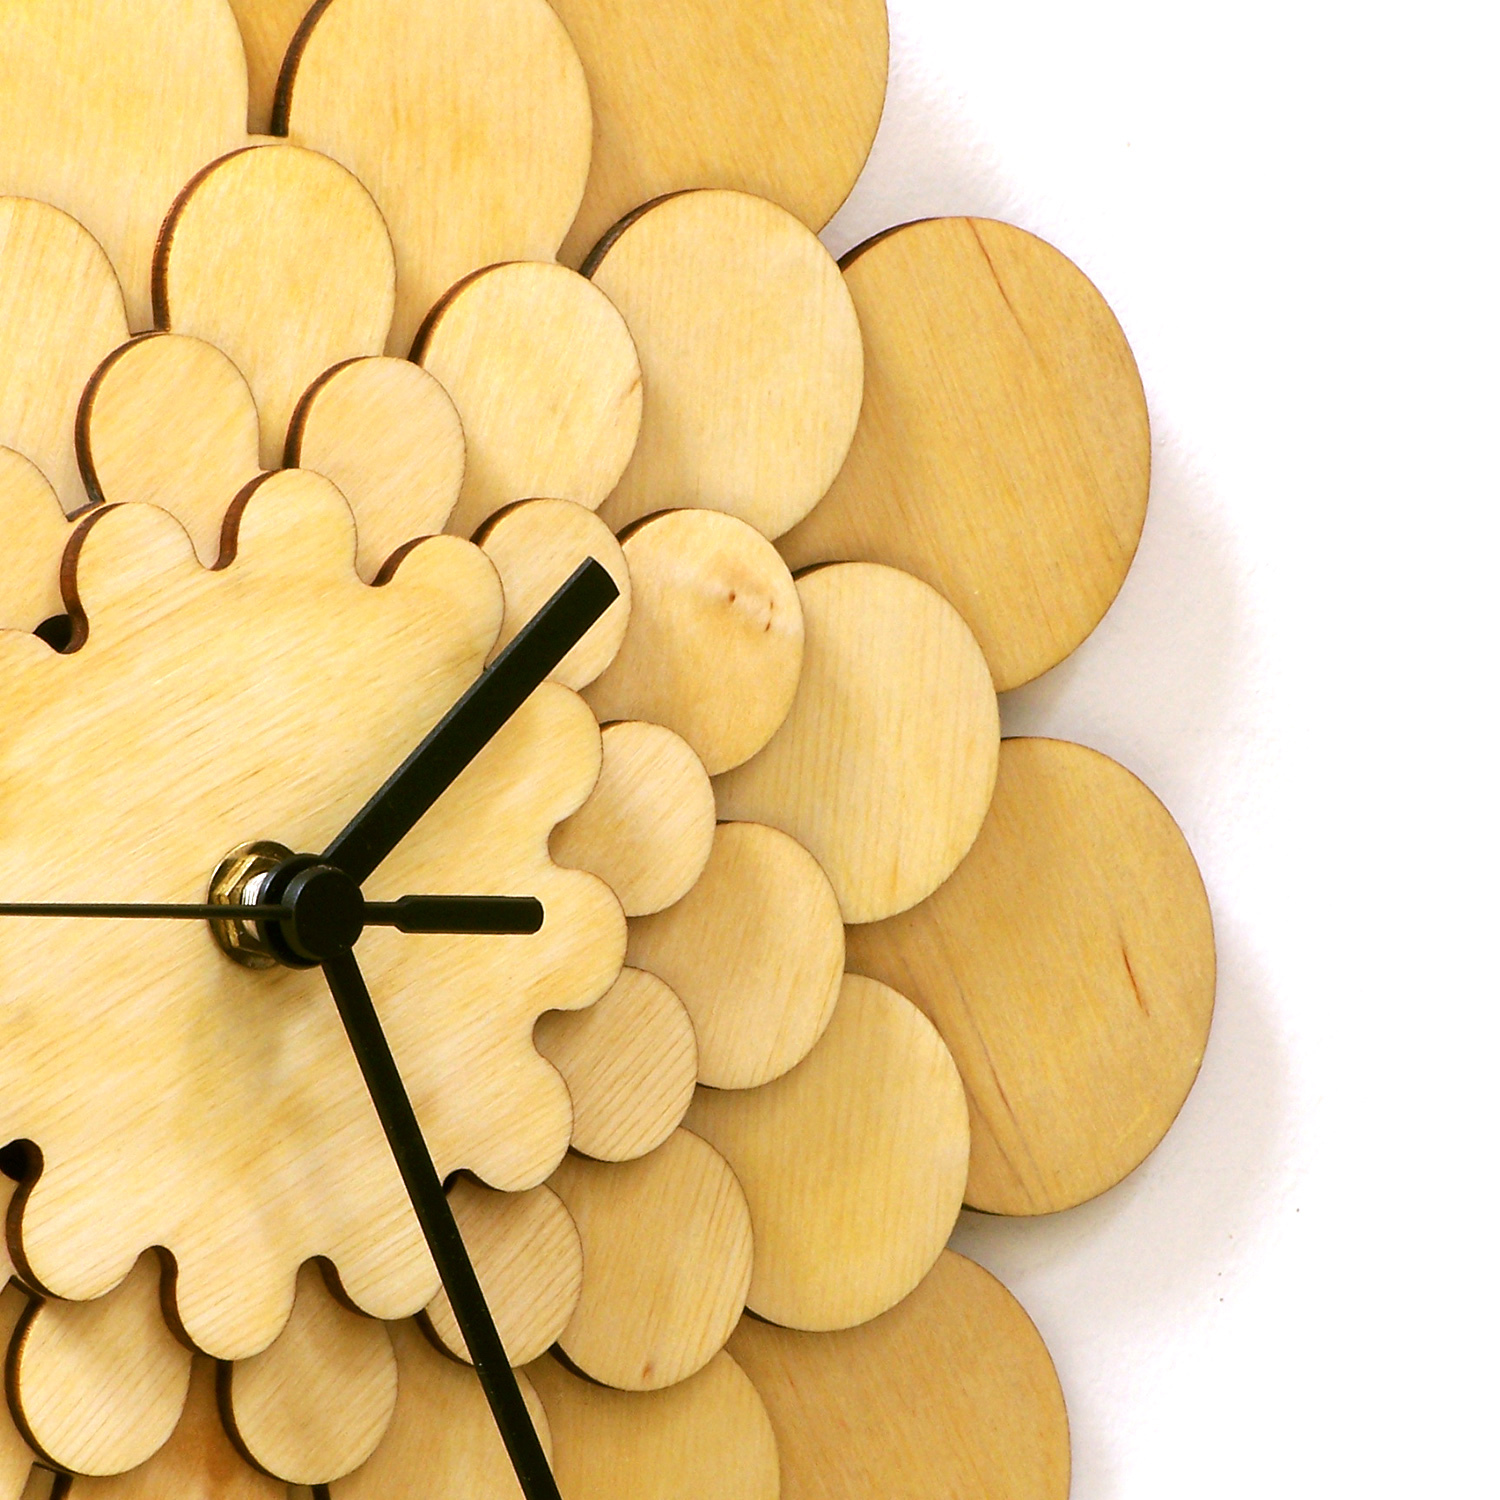 Natural tone wooden wall clock with floral appearance, a wall art - Dahlia M image 4